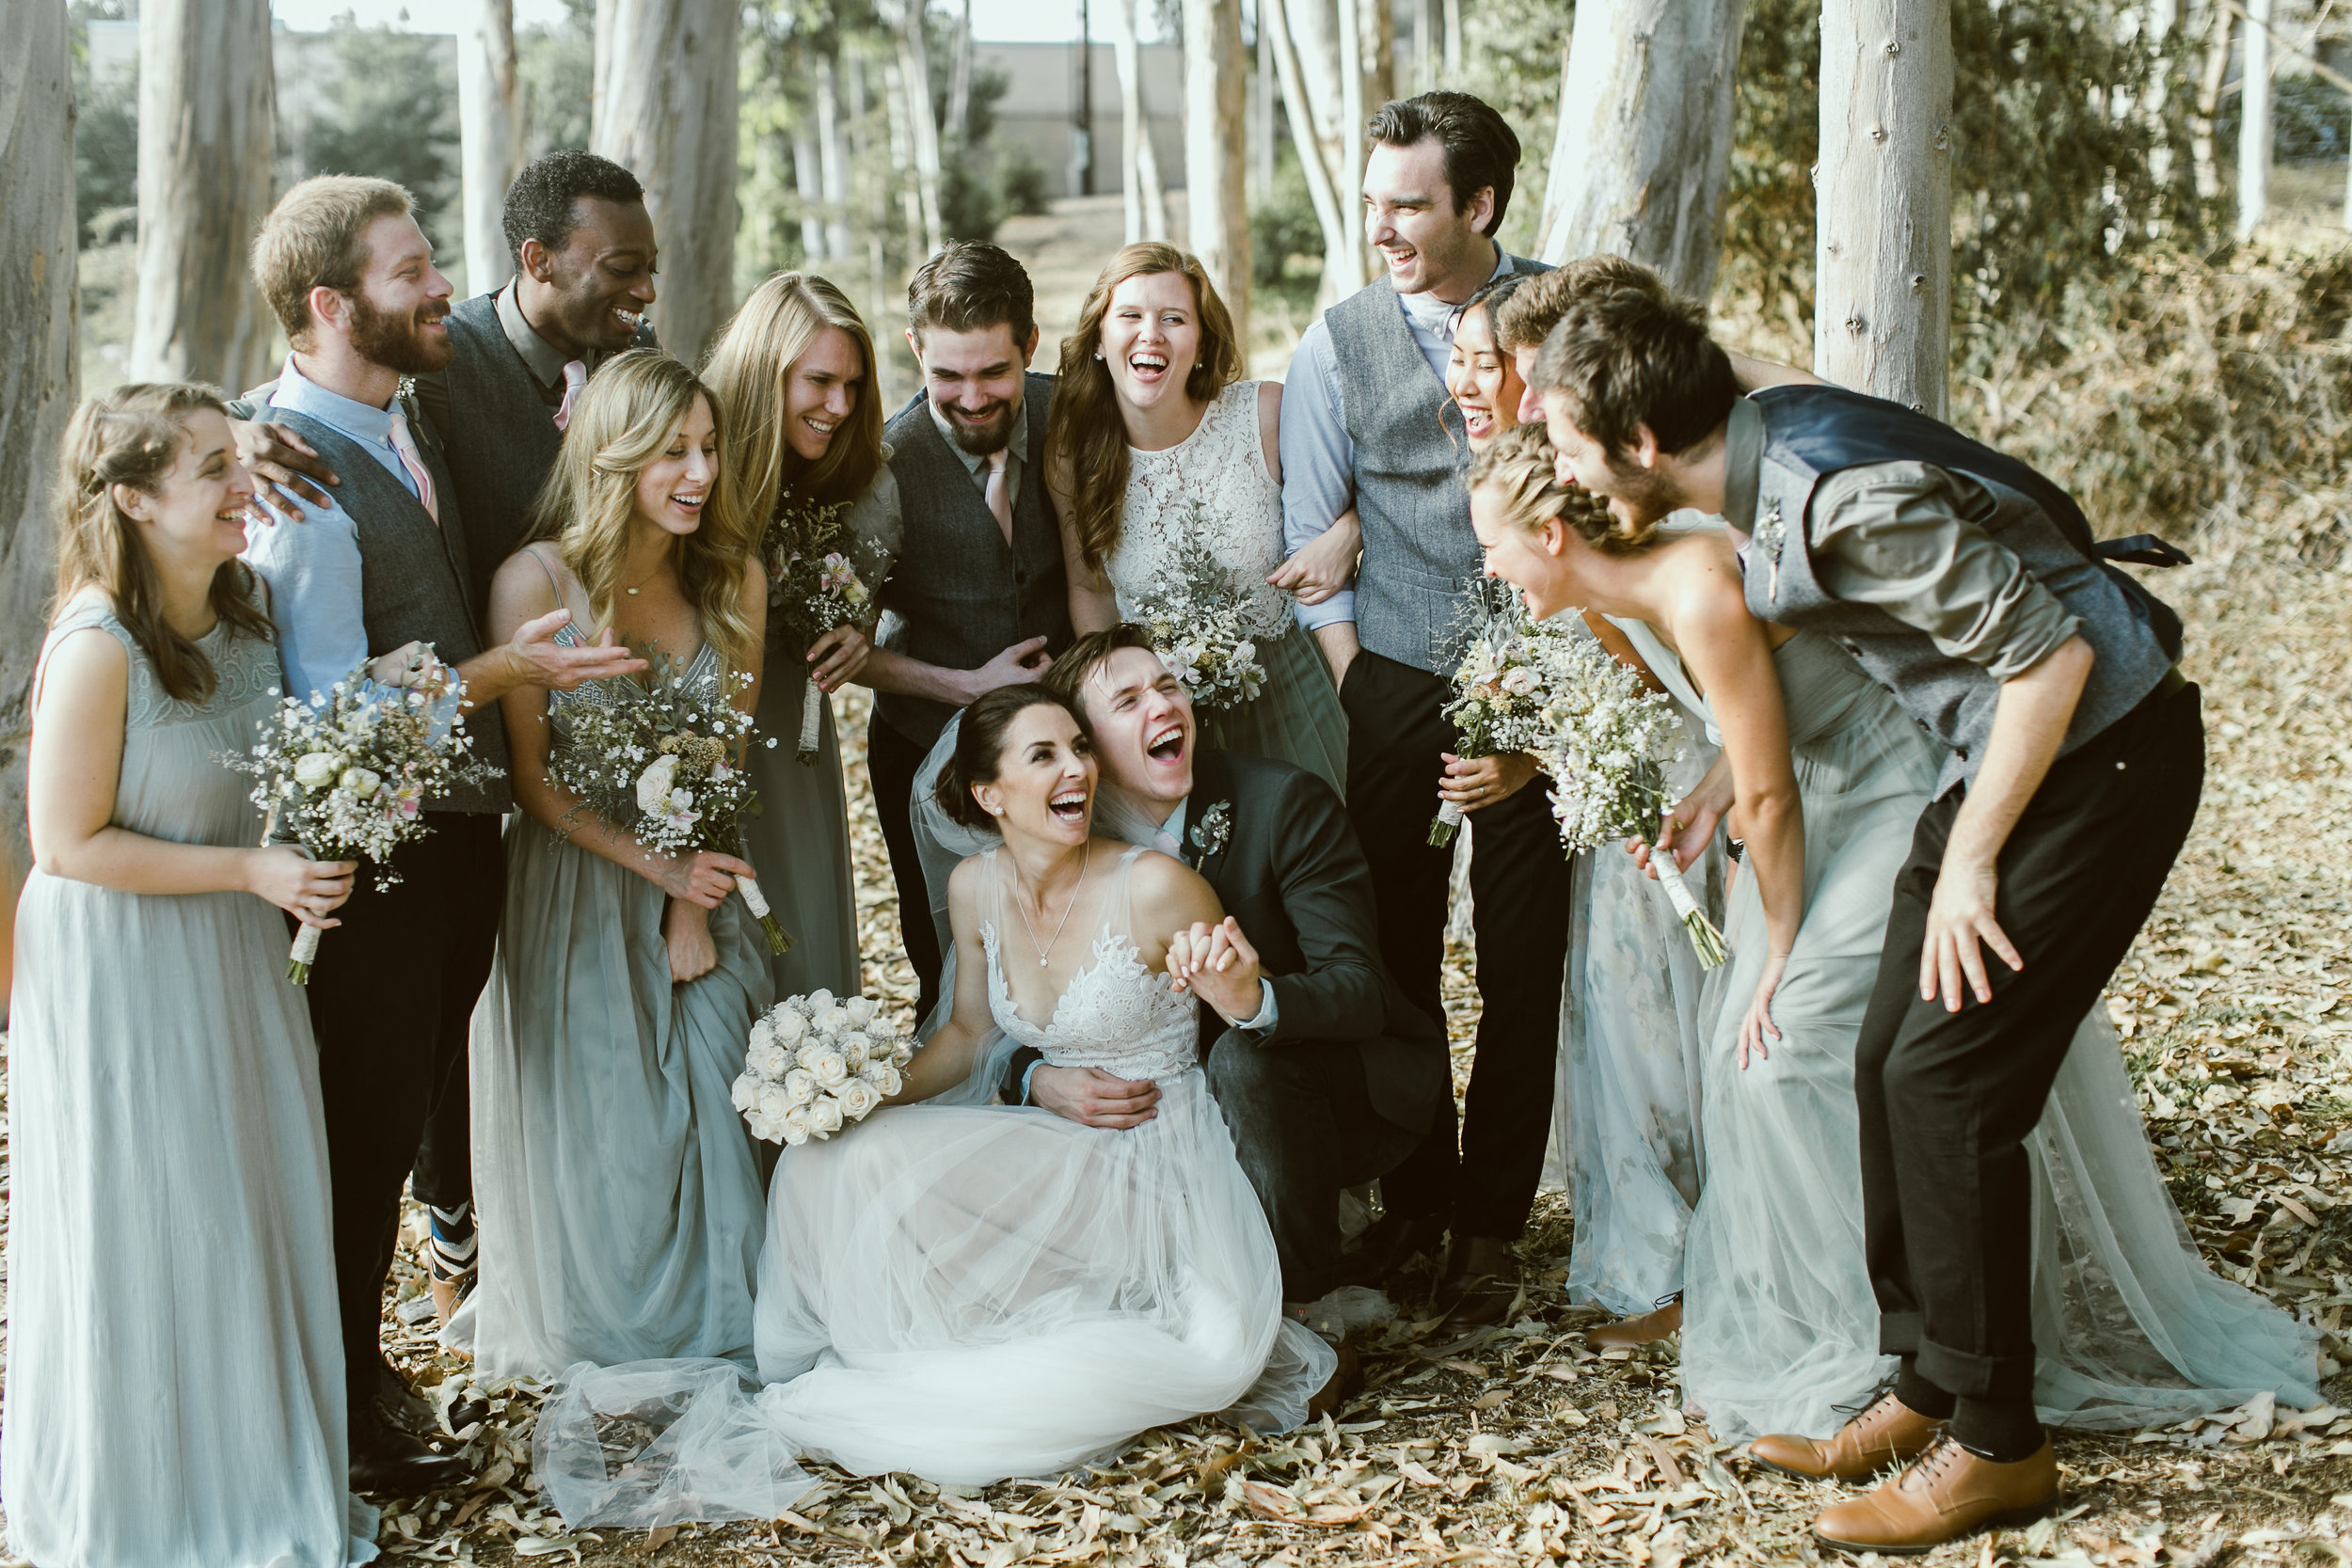 Claire Oring Photography